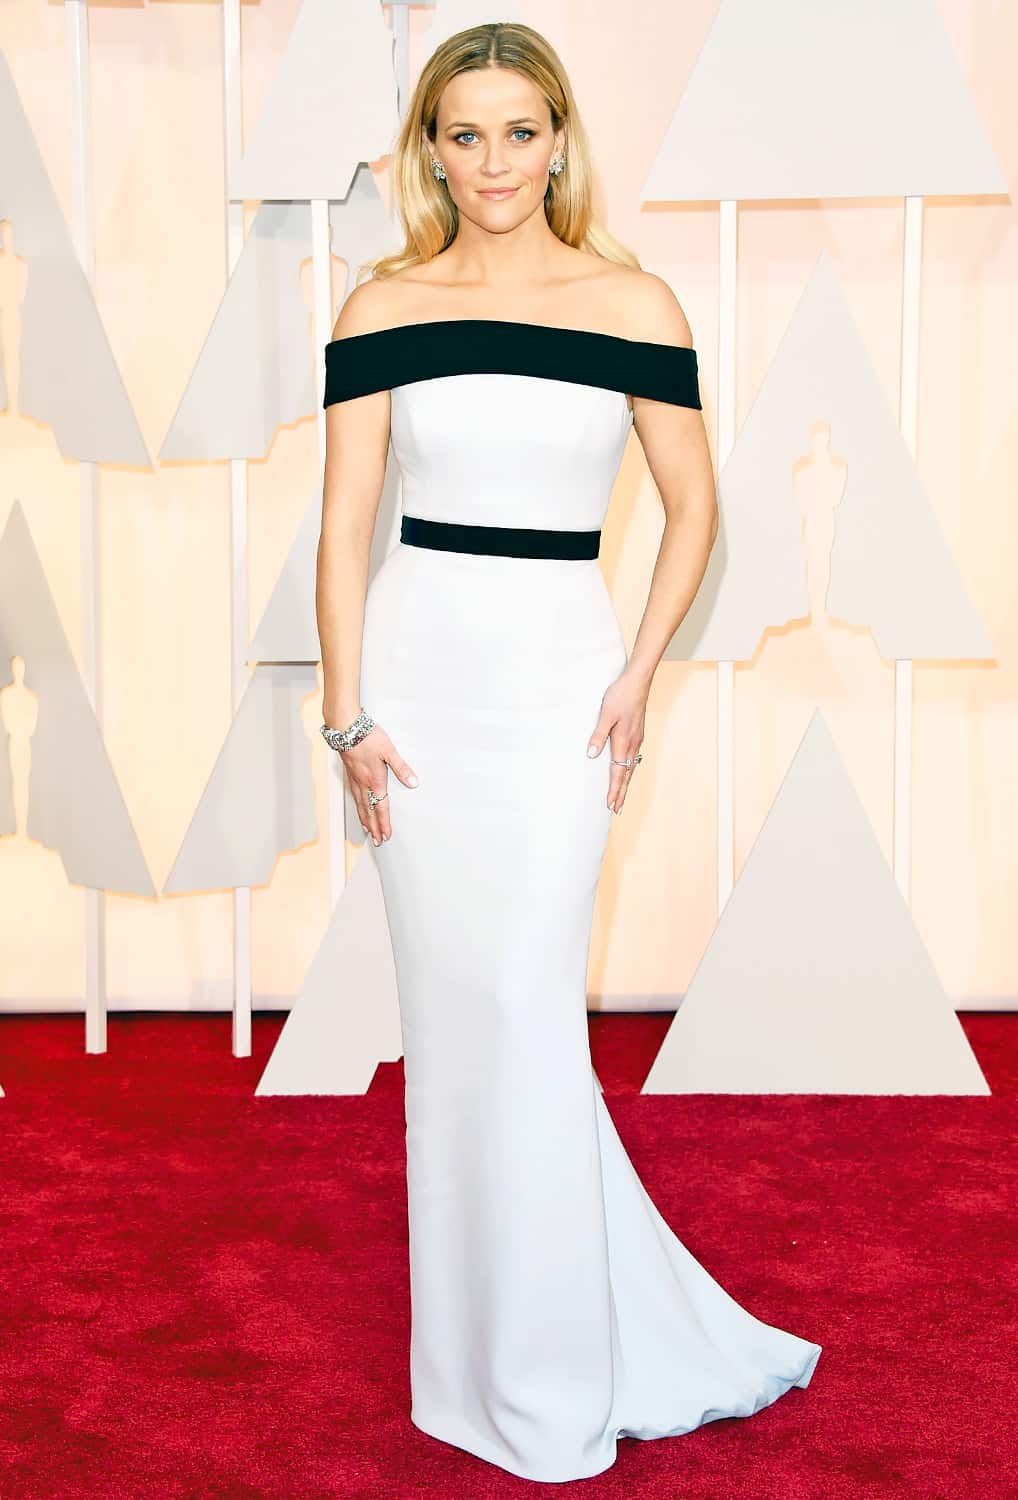 oscars-2015-red-carpet-reese-witherspoon